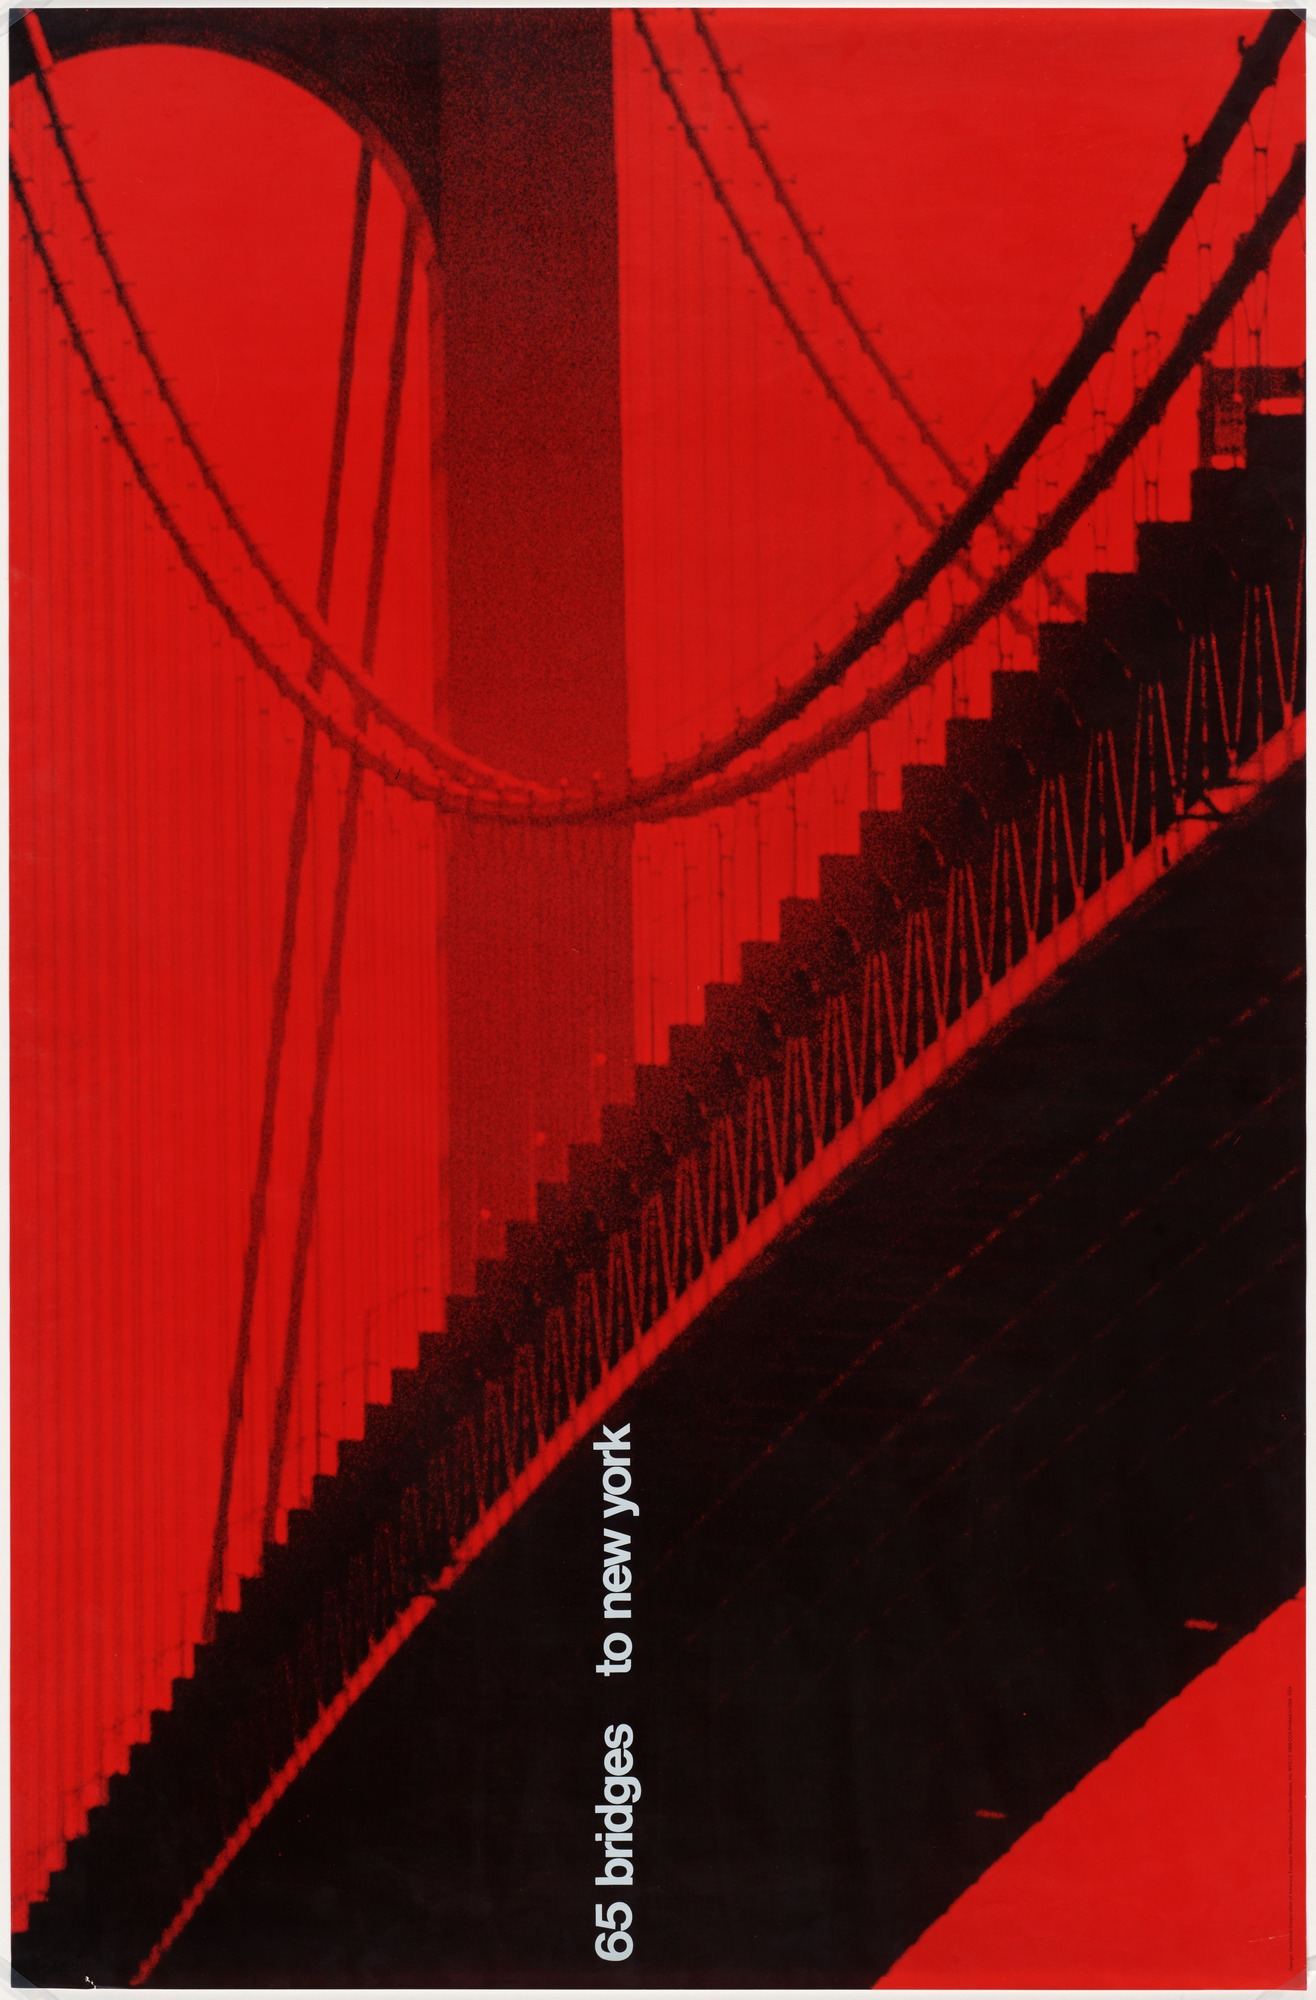 photograph of a bridge from below in a red hue